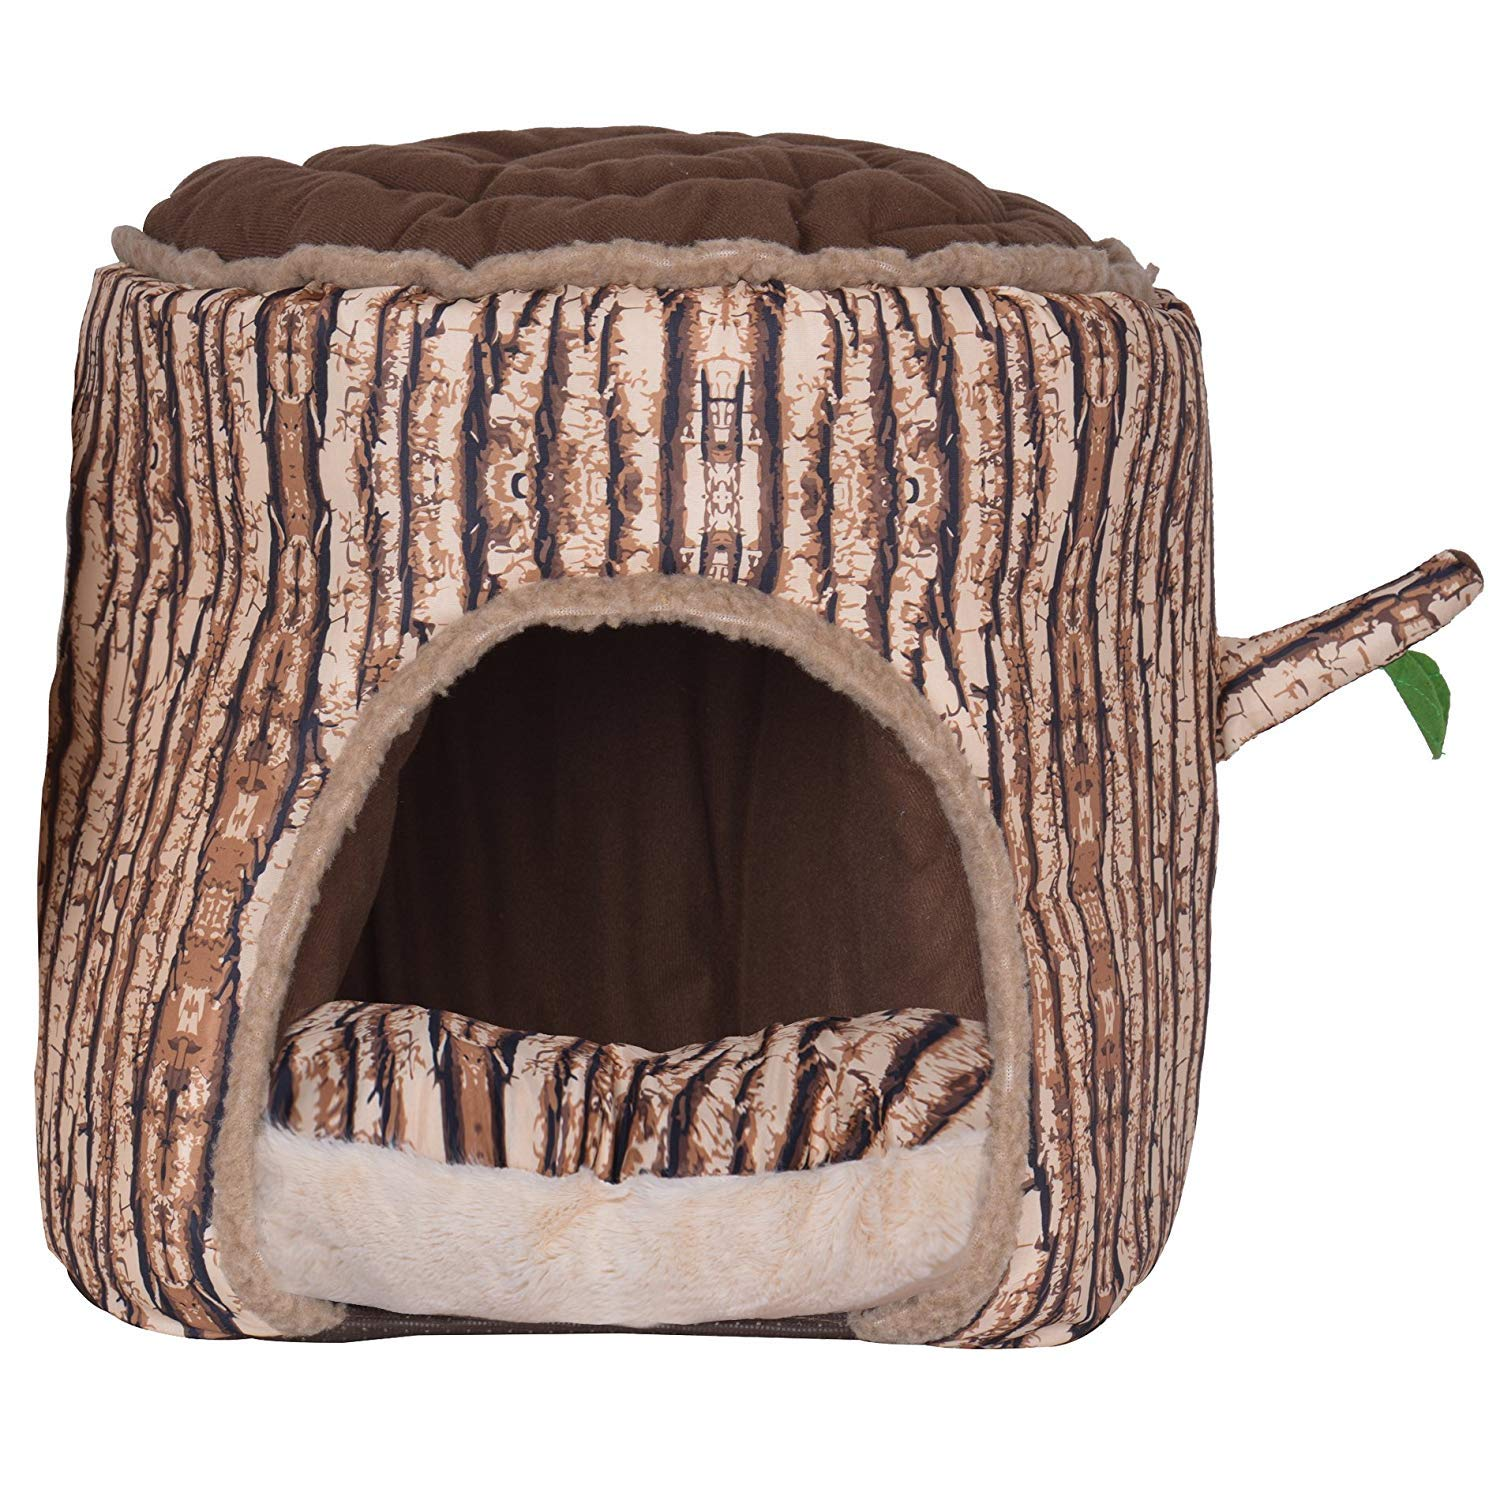 BINGPET Portable Soft Indoor Small Dog House with Removable Cushion Tree Shaped Bed for Puppy Cat